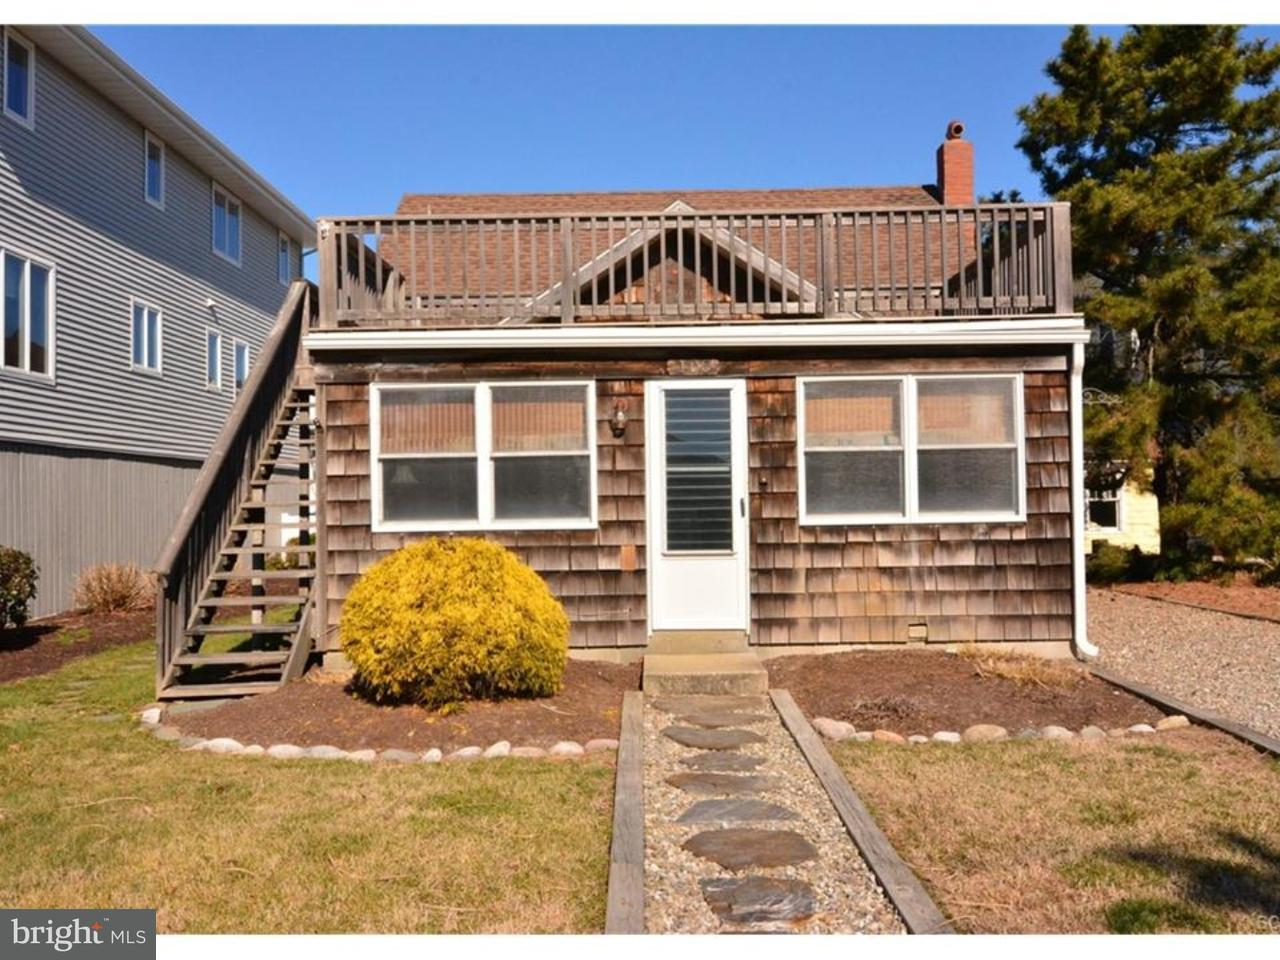 Single Family Home for Sale at 105 HOLLYWOOD Street Bethany Beach, Delaware 19930 United States